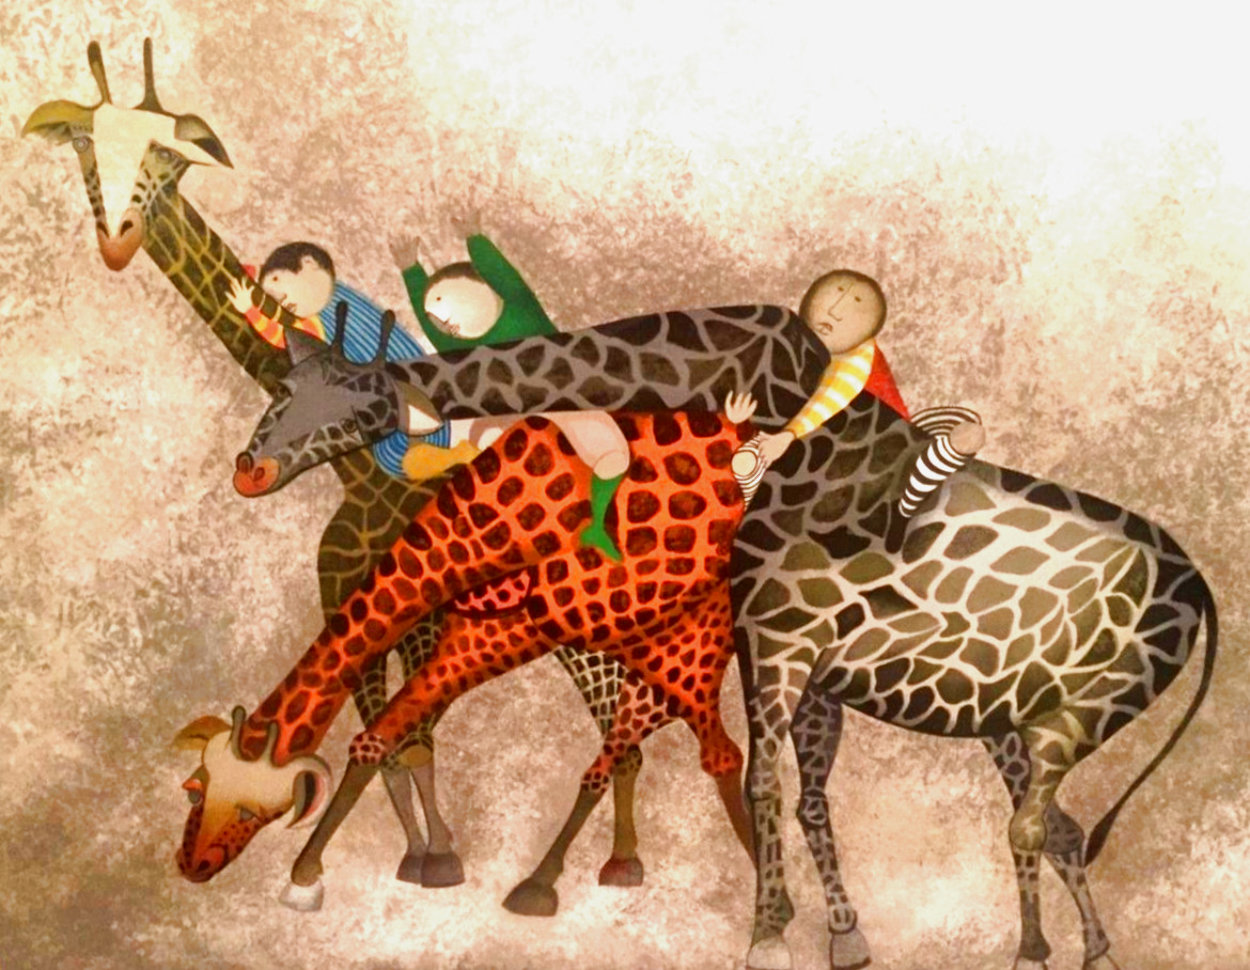 Giraffes 1980 Limited Edition Print by Graciela Rodo Boulanger